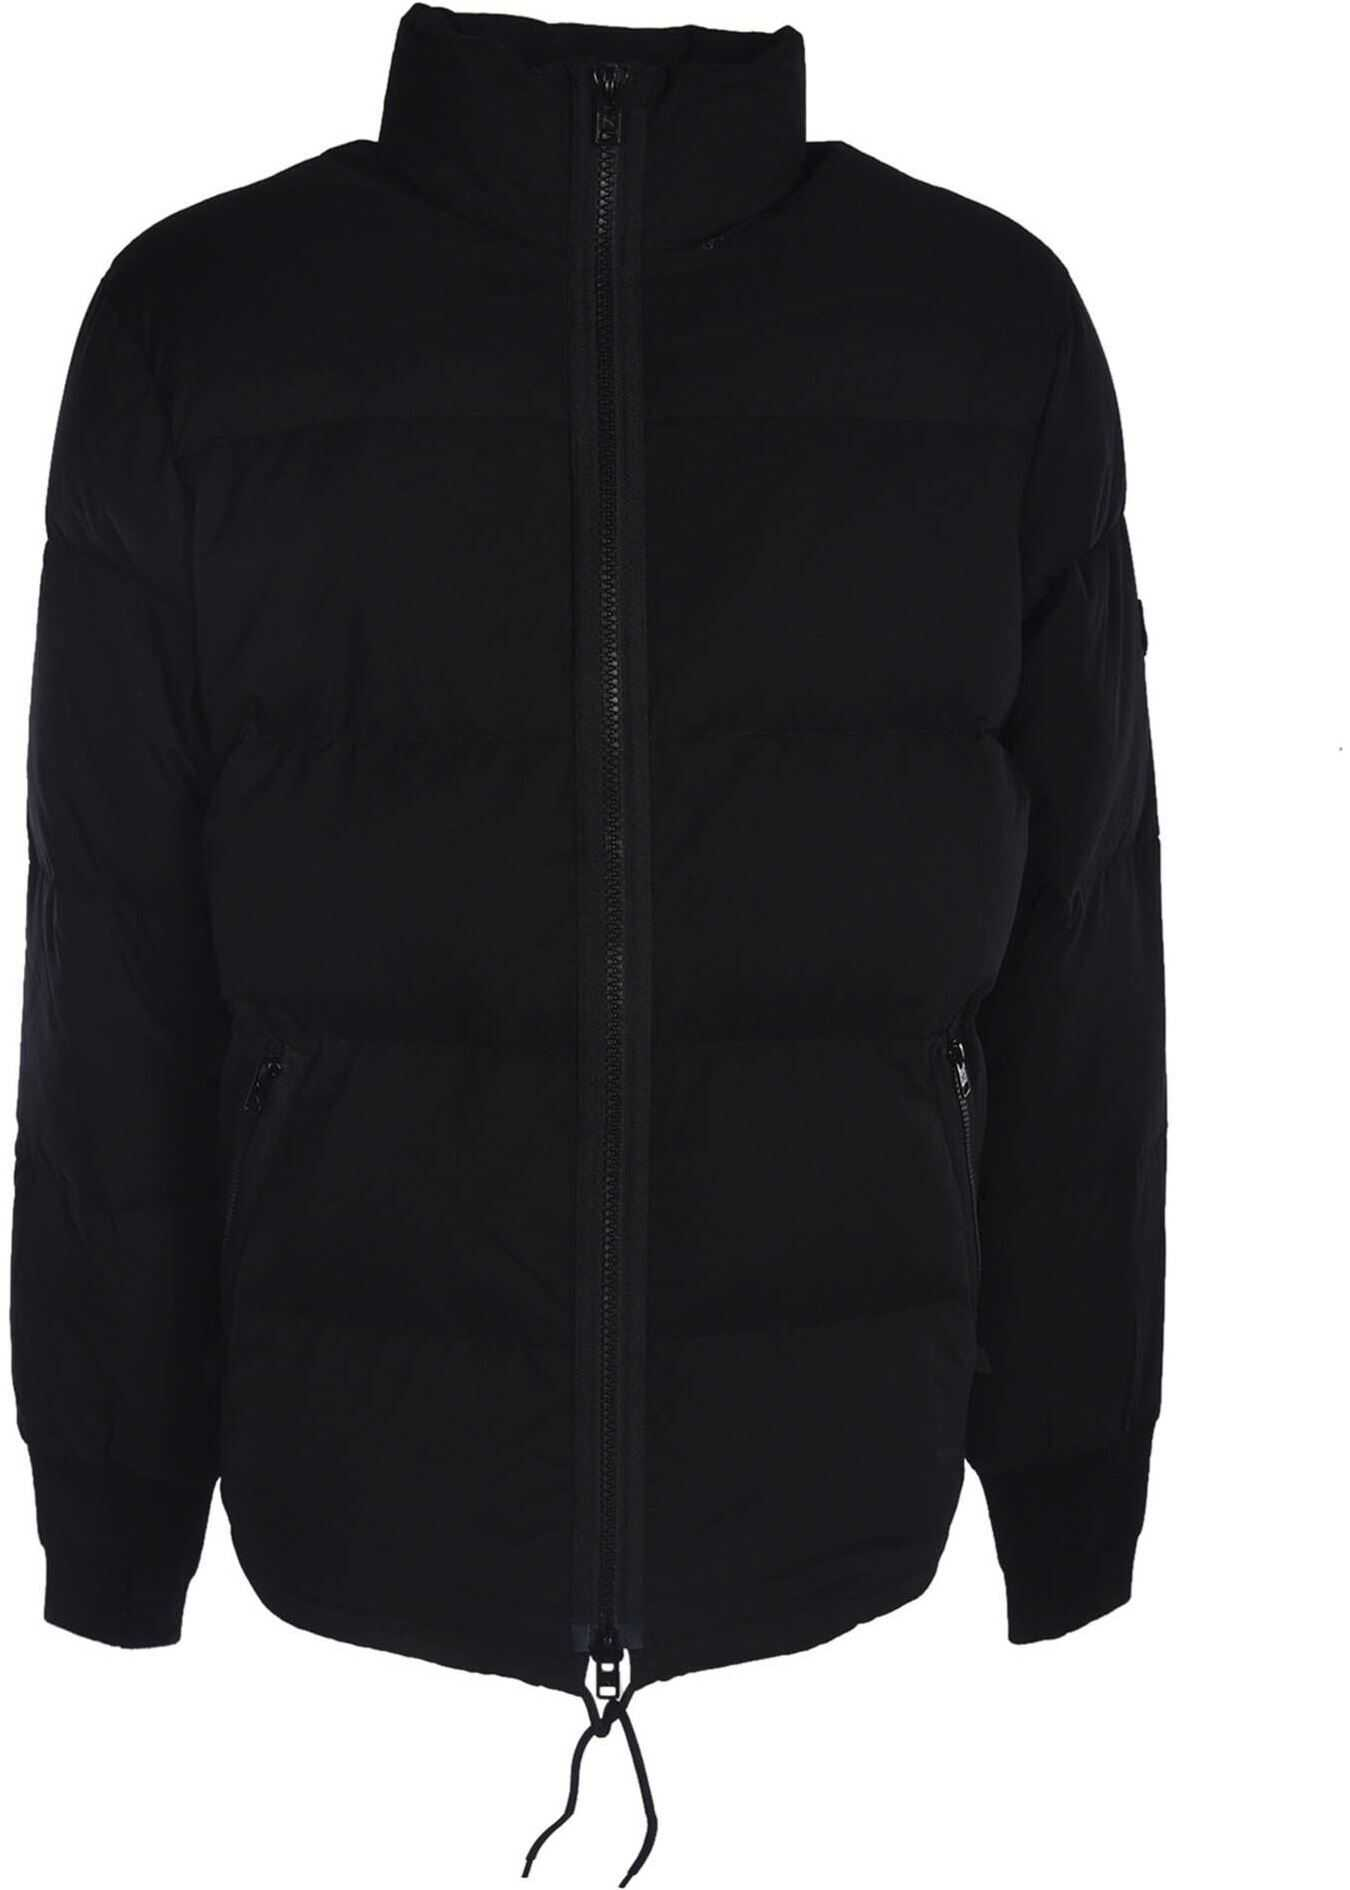 Kenzo Black Puff Jacket Black imagine